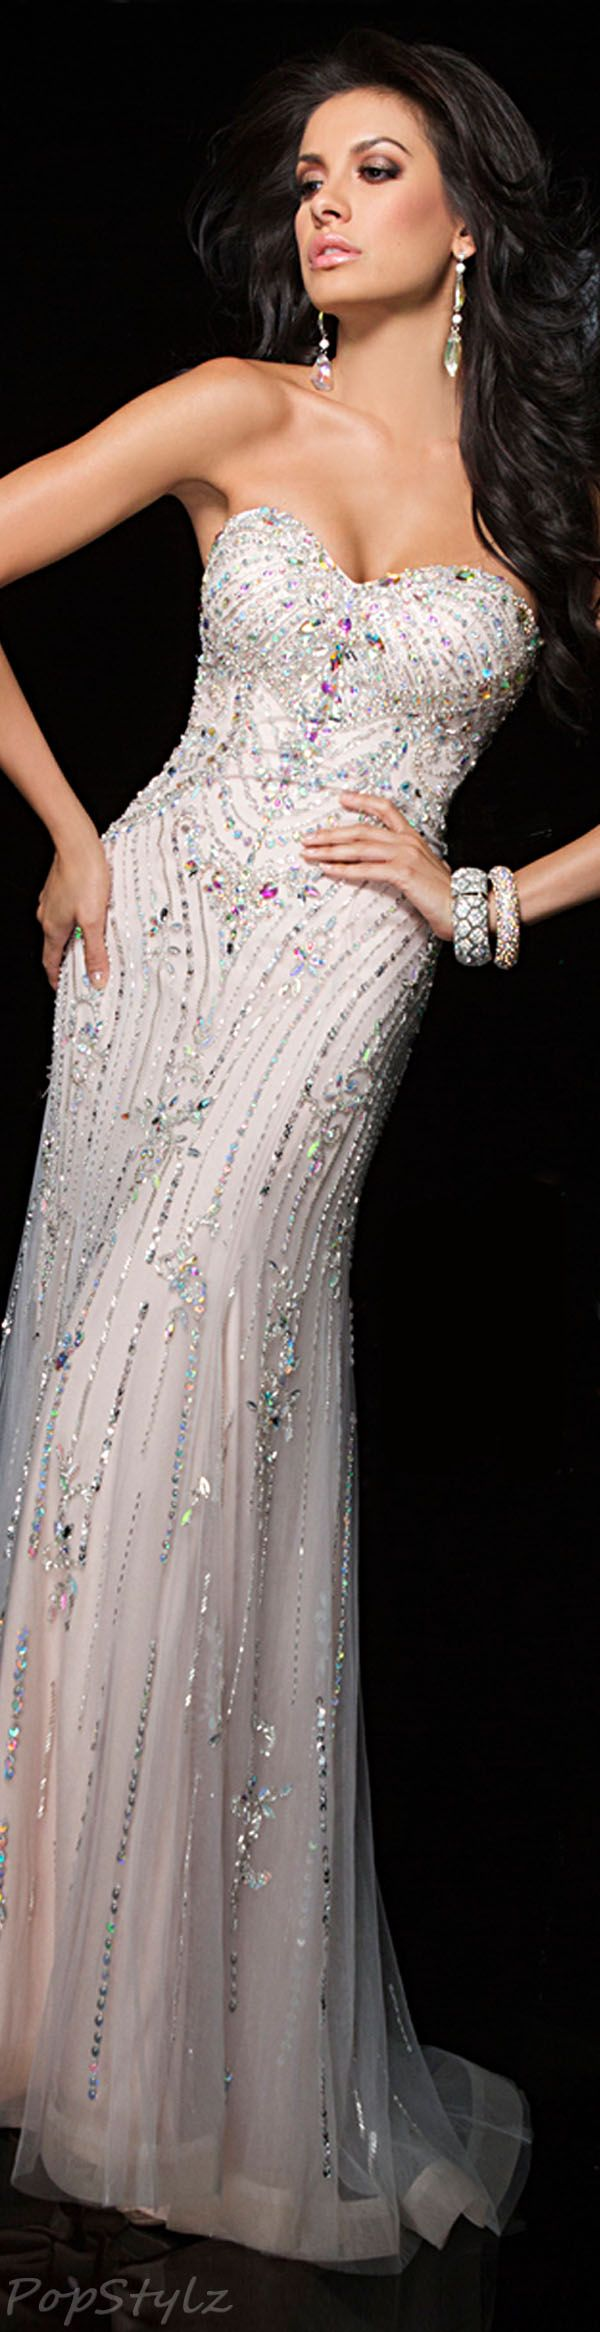 Tony Bowls Evening Gown - great bridal dress for the reception.  I would love this dress in Navy with sheer sleeves.